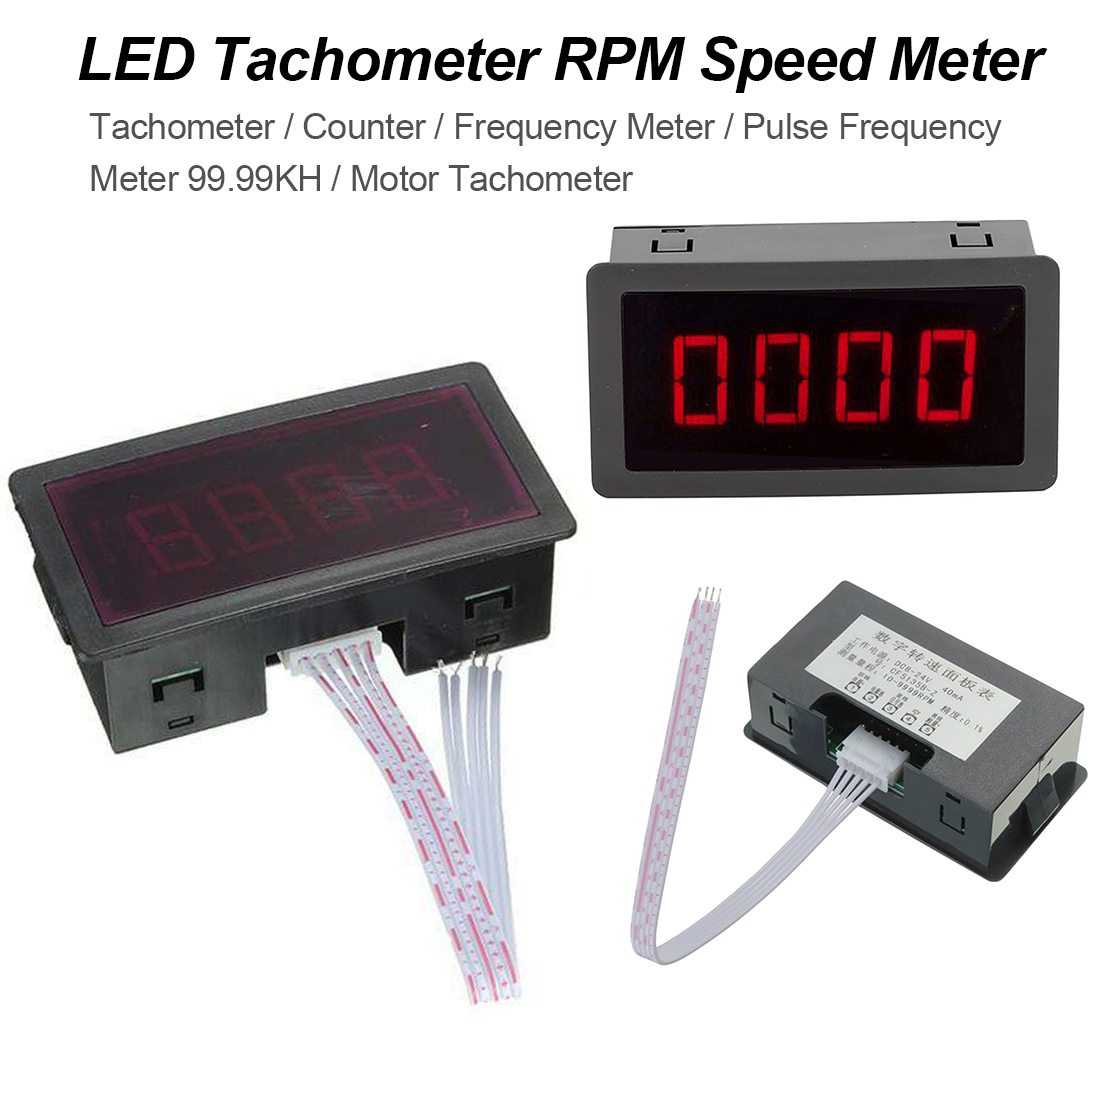 Frequency Meter Pulse Frequency Meter Tachometer Counter RPM Speed Meter 4 Digital+Hall Proximity Switch